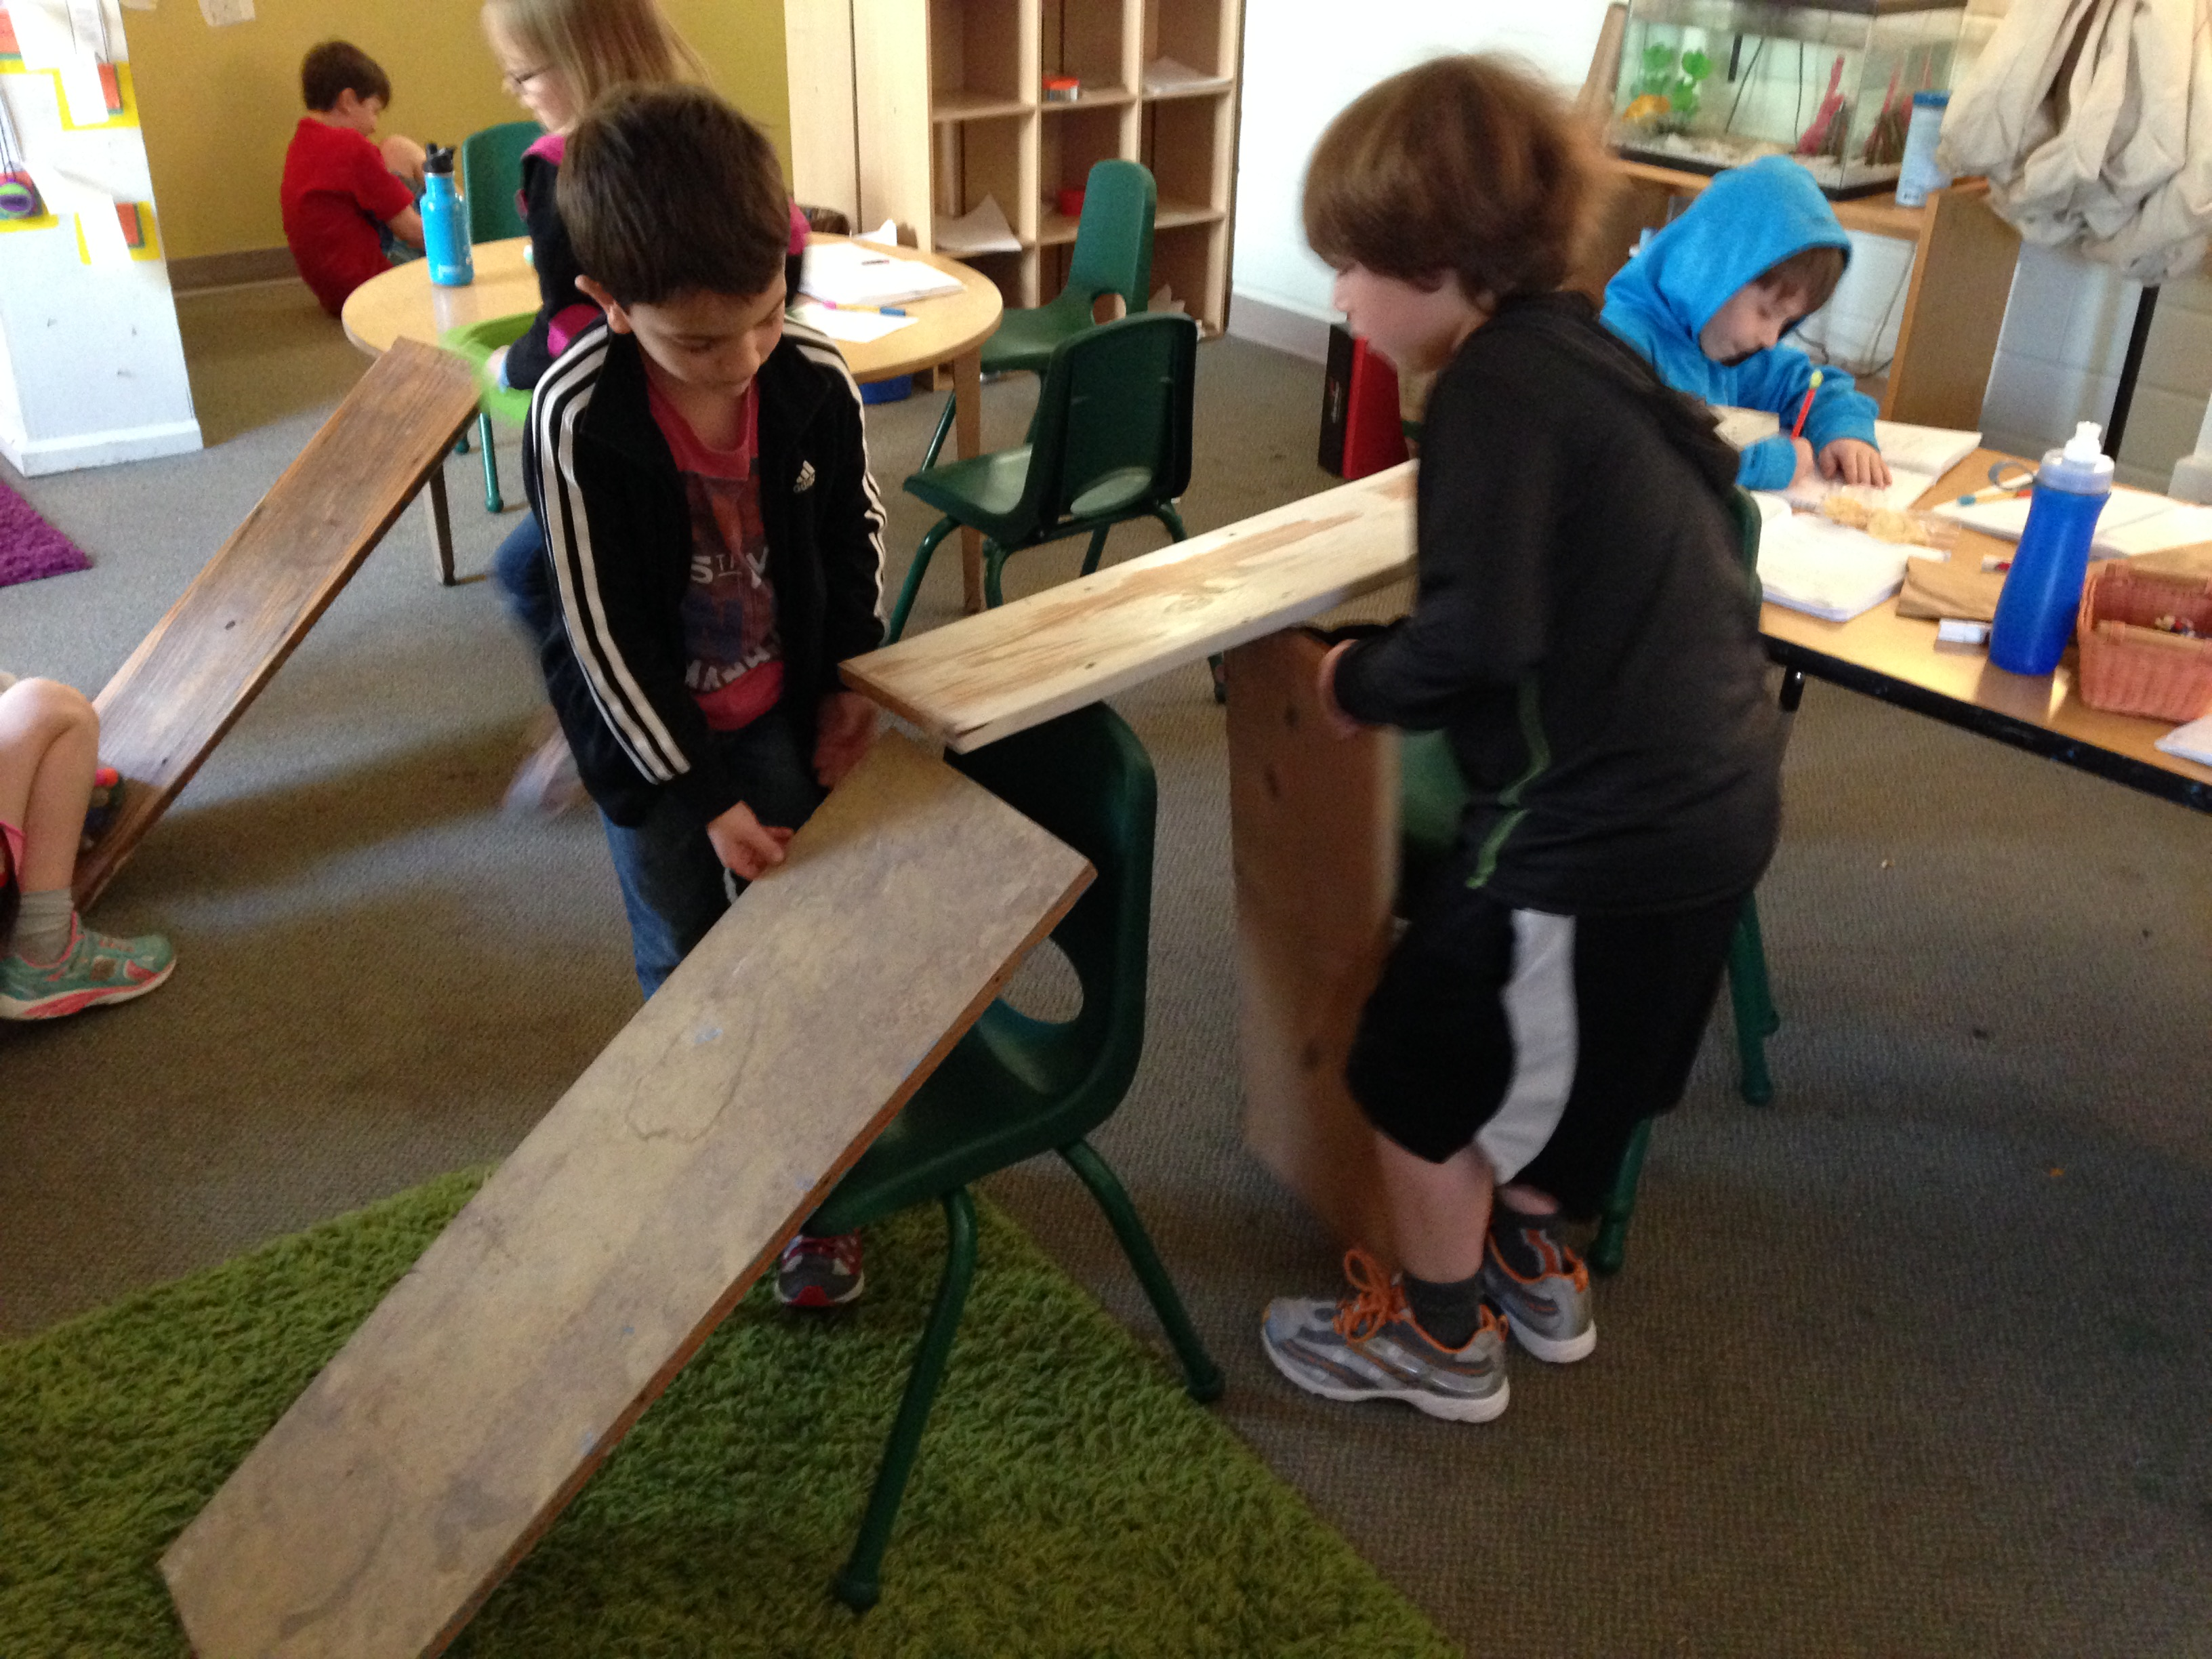 Inclined Plane Examples In Everyday Life what's new with the beta crew?! • ahb community school